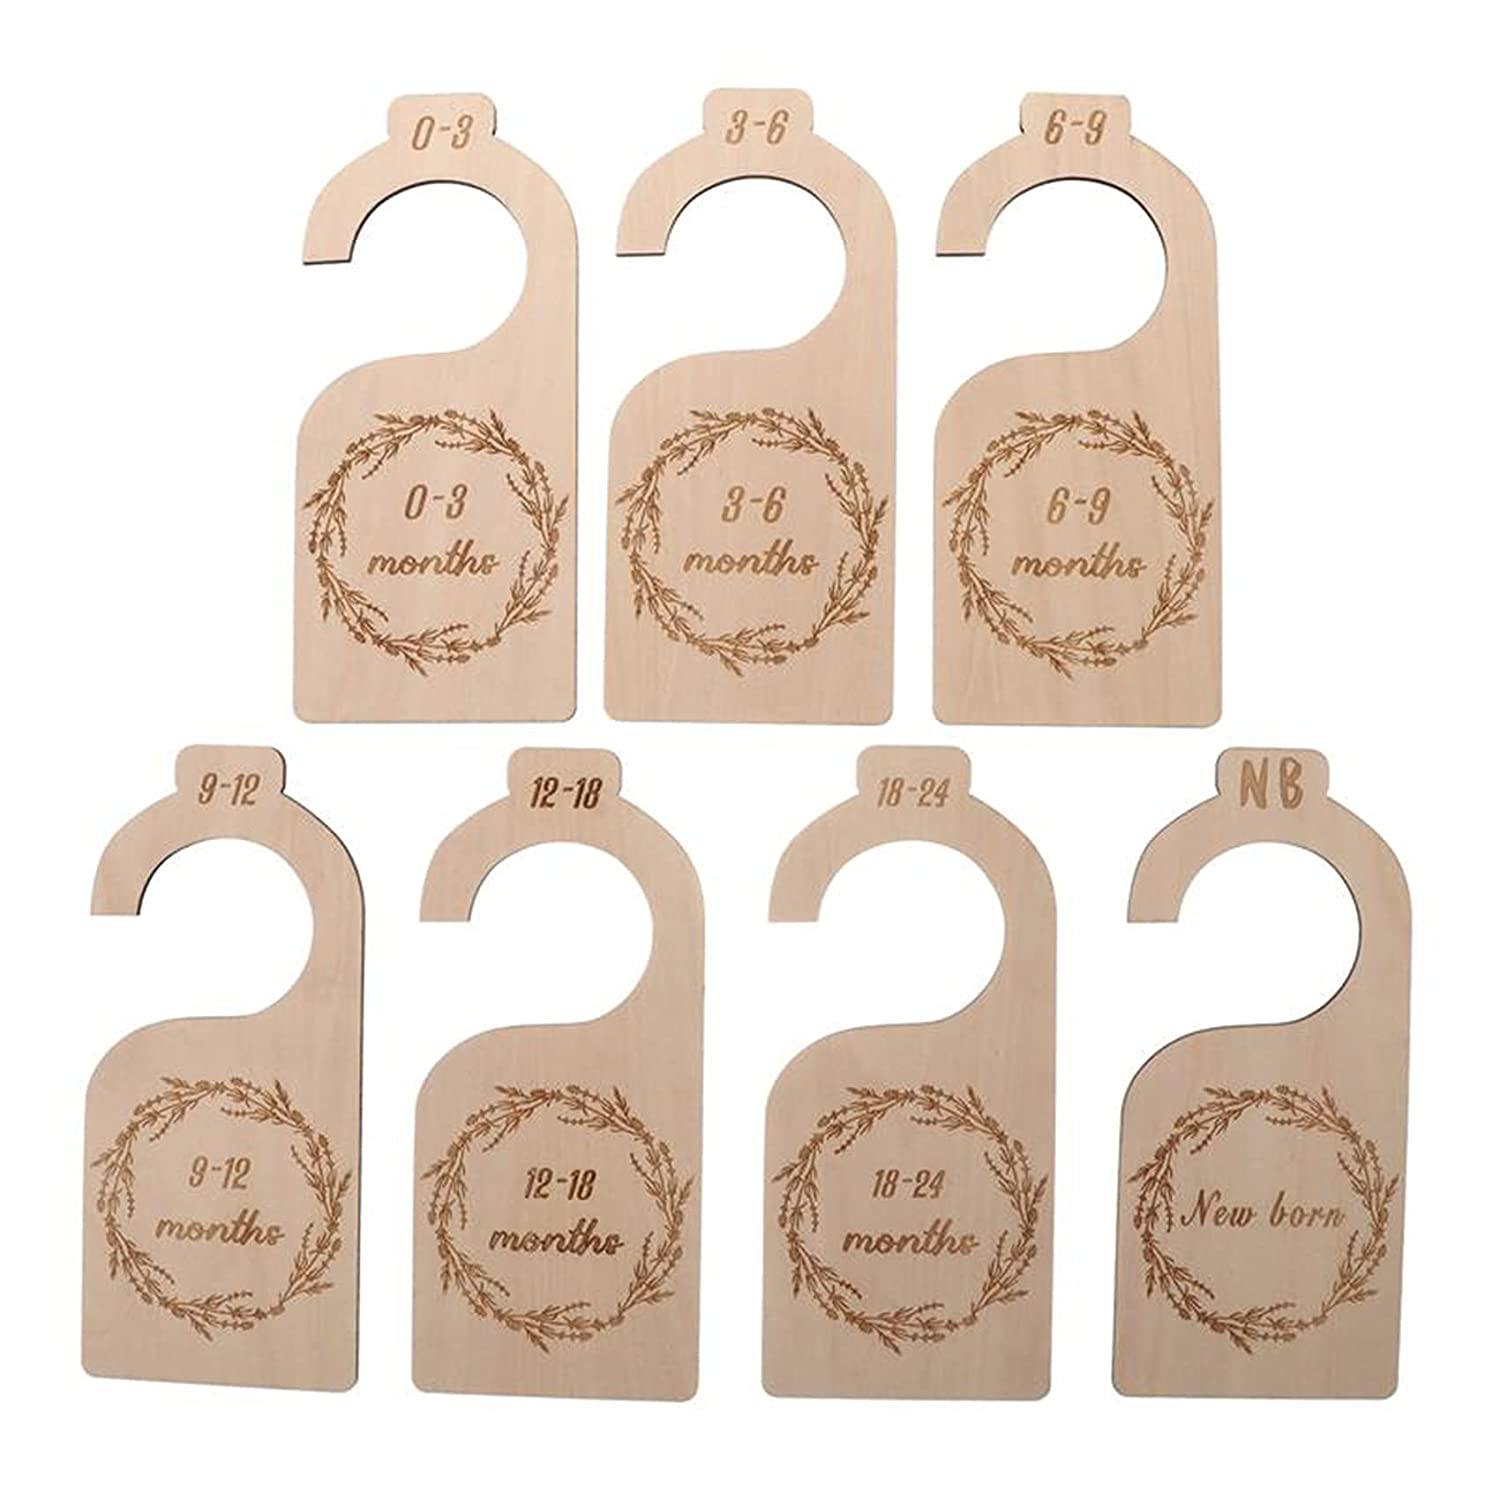 ILamourCar free Wood Baby At the price of surprise Closet Organ 7 Dividers Pieces